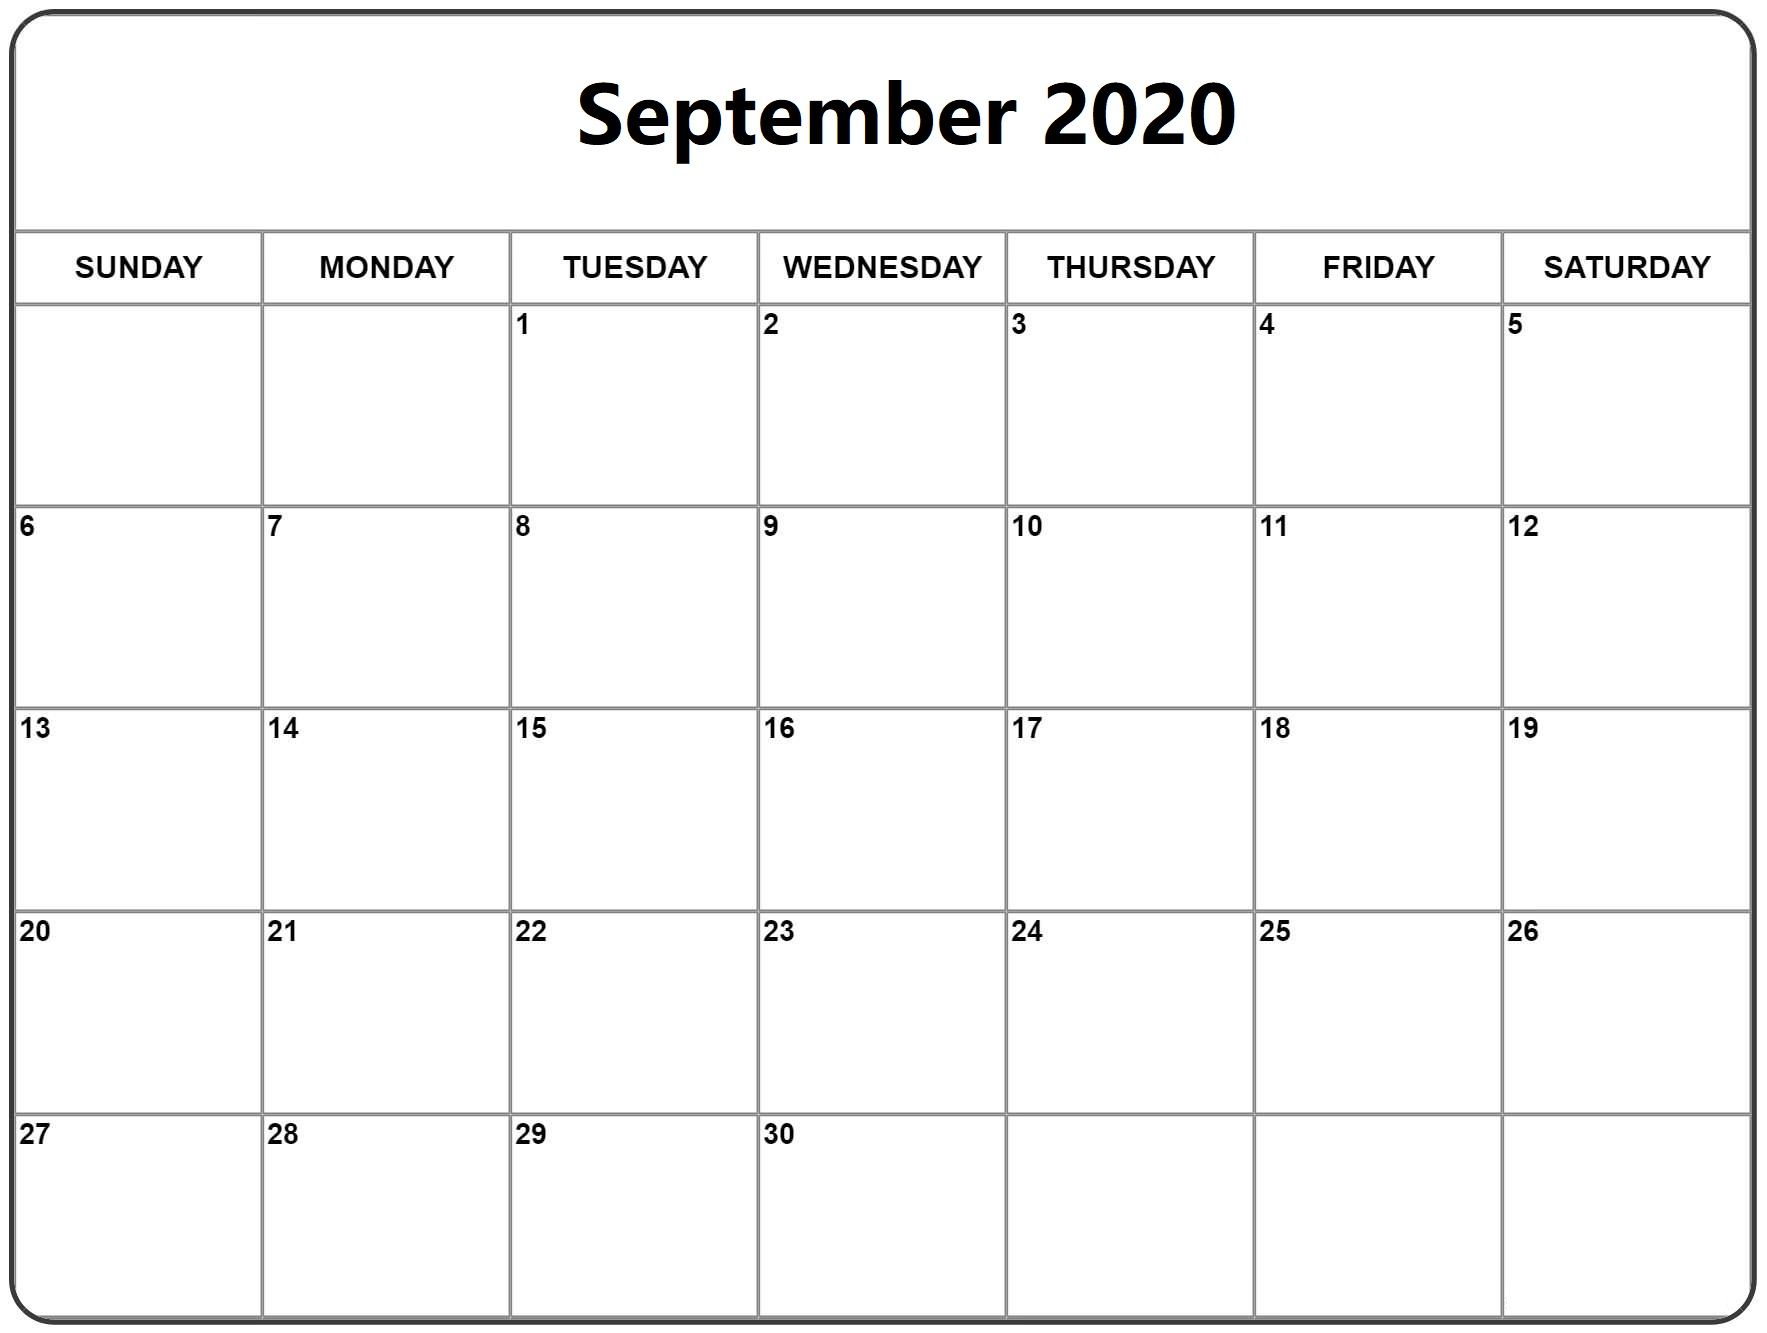 September 2020 Calendar Printable Large Print In 2020 September Calendar July Calendar 2020 Calendar Template